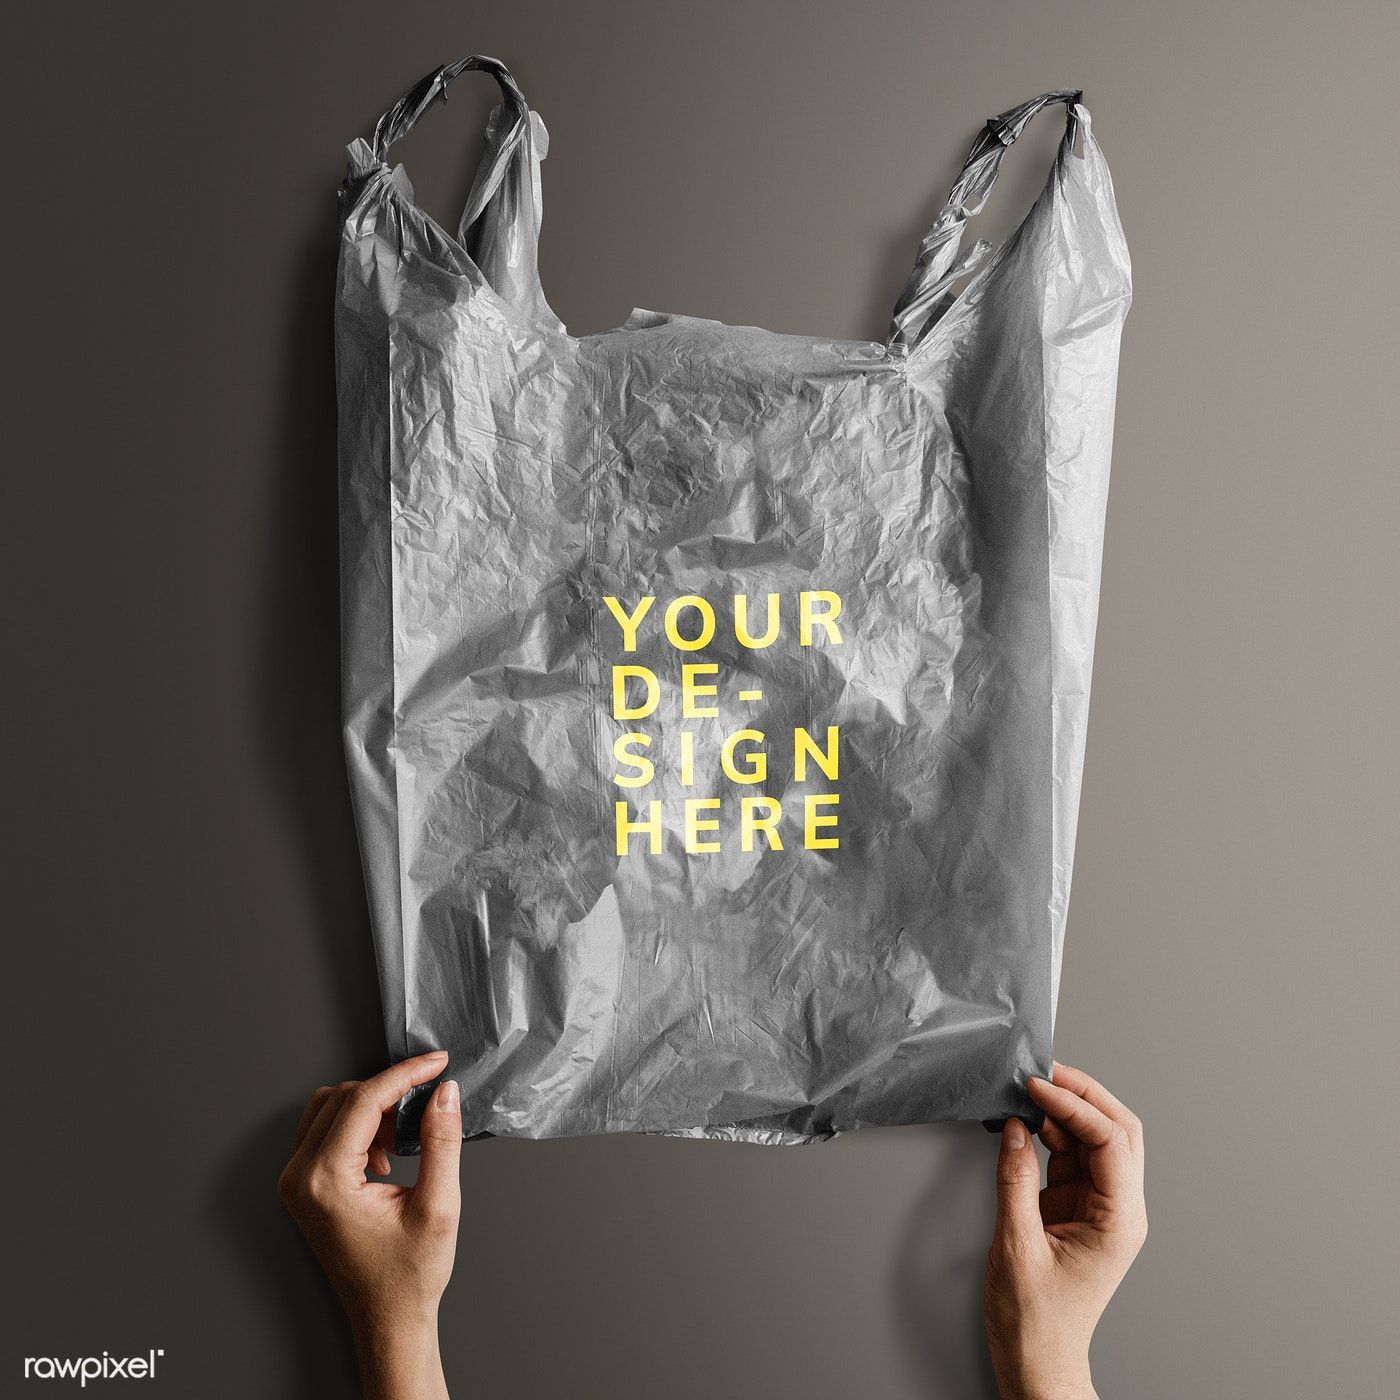 Download Download Premium Psd Of Gray Your Design Here Plastic Bag Mockup 1213789 Bag Mockup Plastic Bag Design Plastic Bag